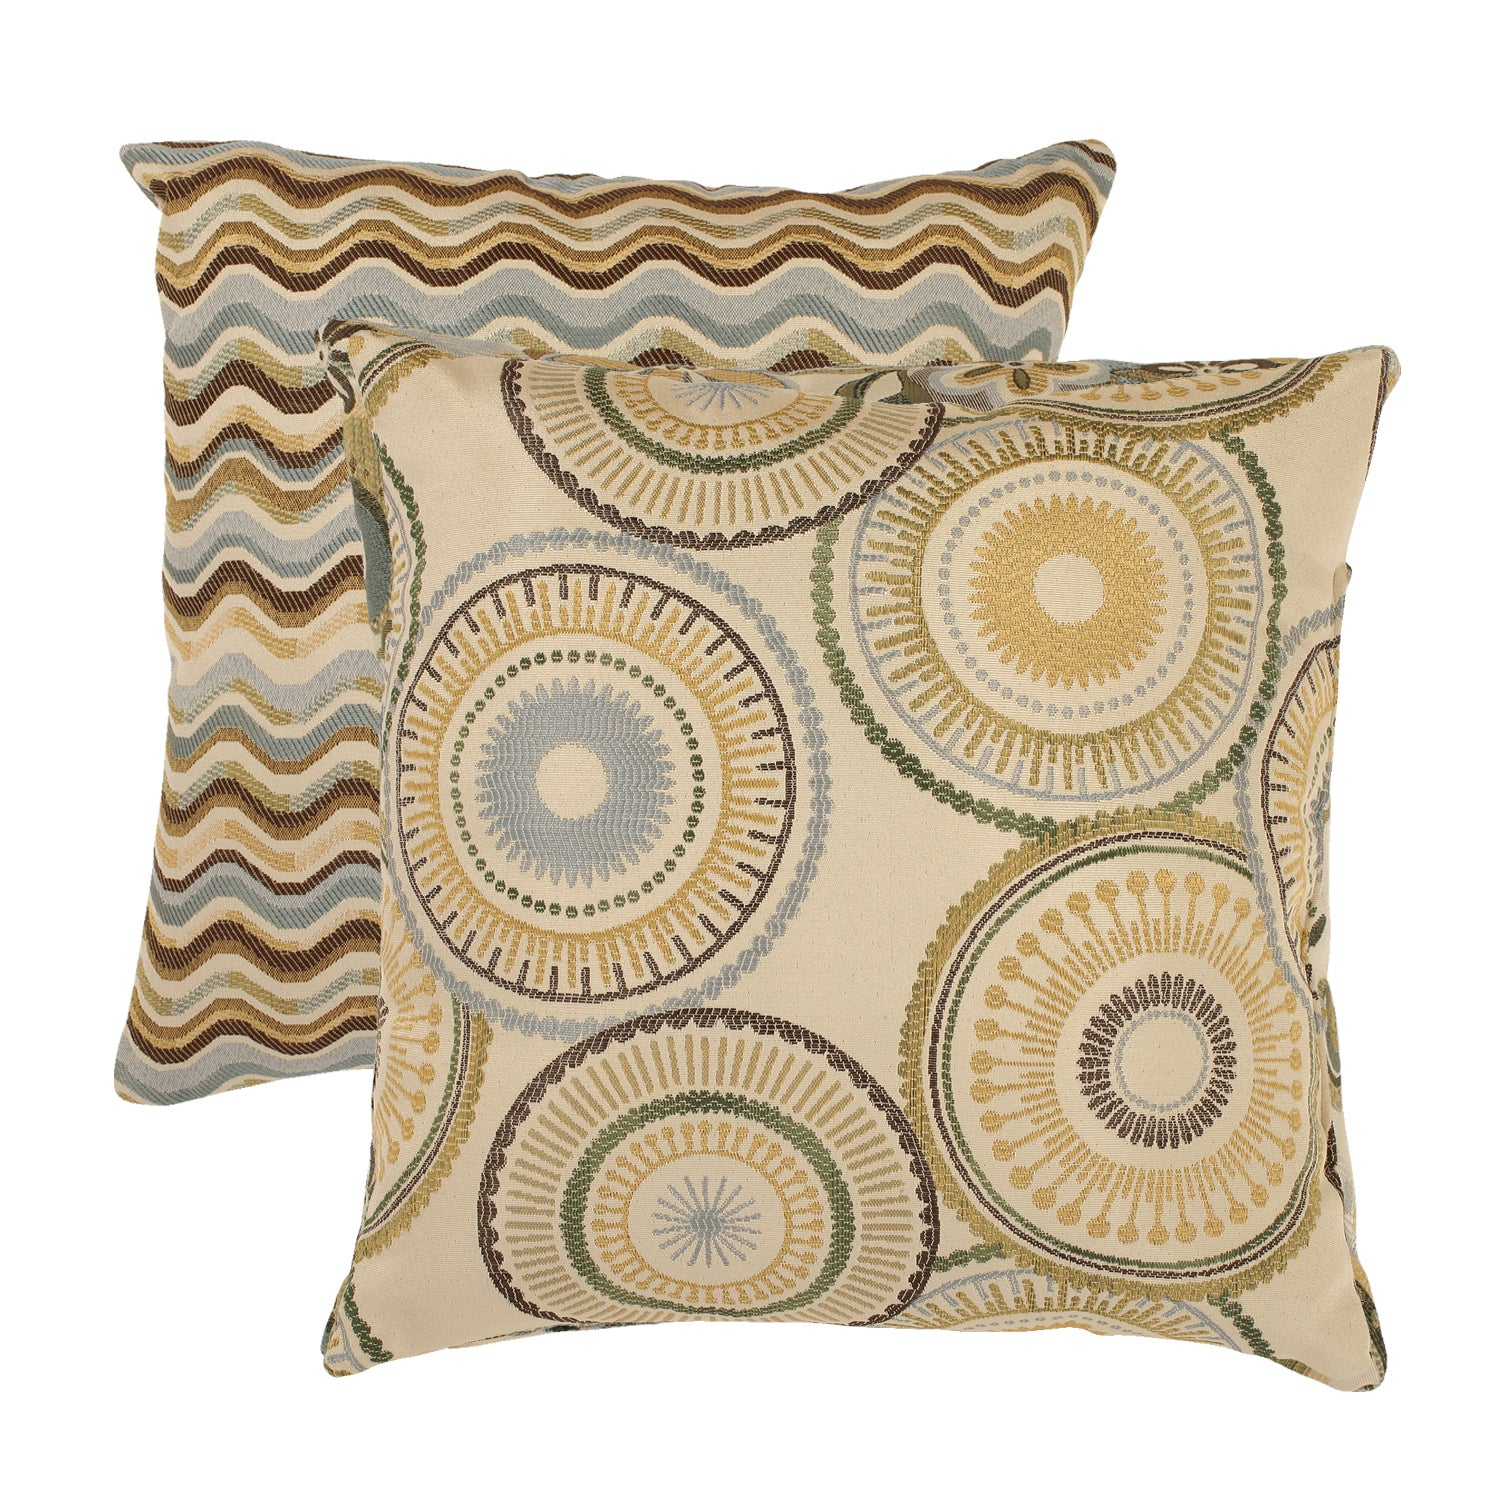 Pillow Perfect 'Riley' and 'Wave' Throw Pillows (Set of 2)